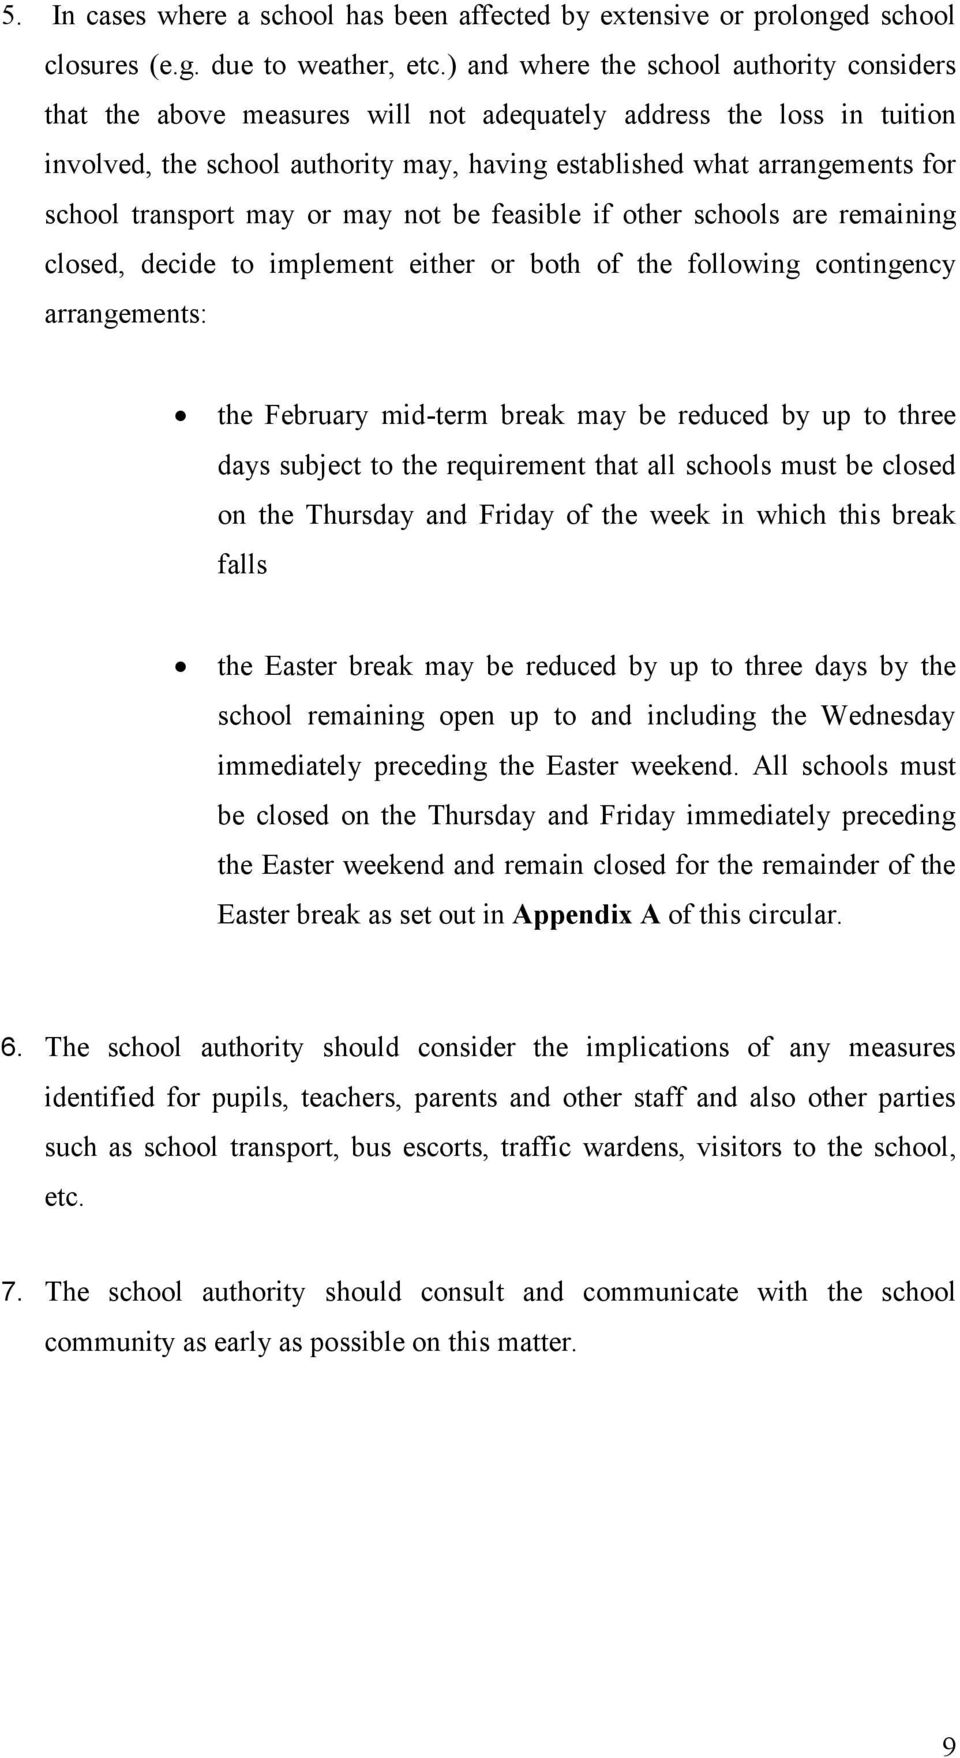 transport may or may not be feasible if other schools are remaining closed, decide to implement either or both of the following contingency arrangements: the February mid-term break may be reduced by